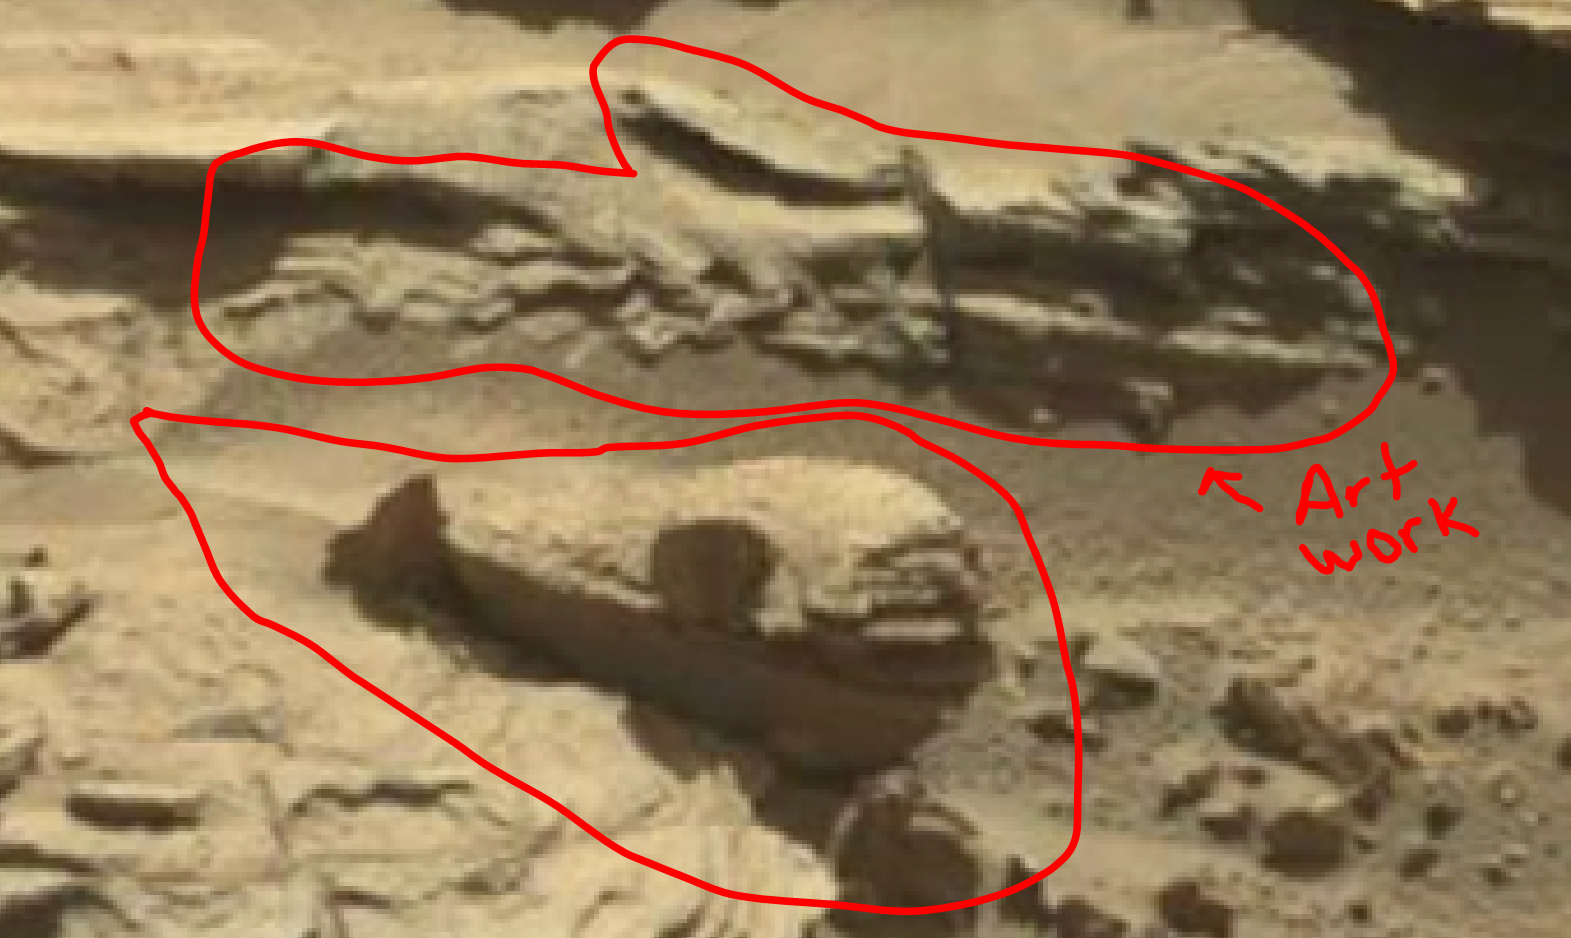 mars sol 1298 anomaly-artifacts 1a was life on mars